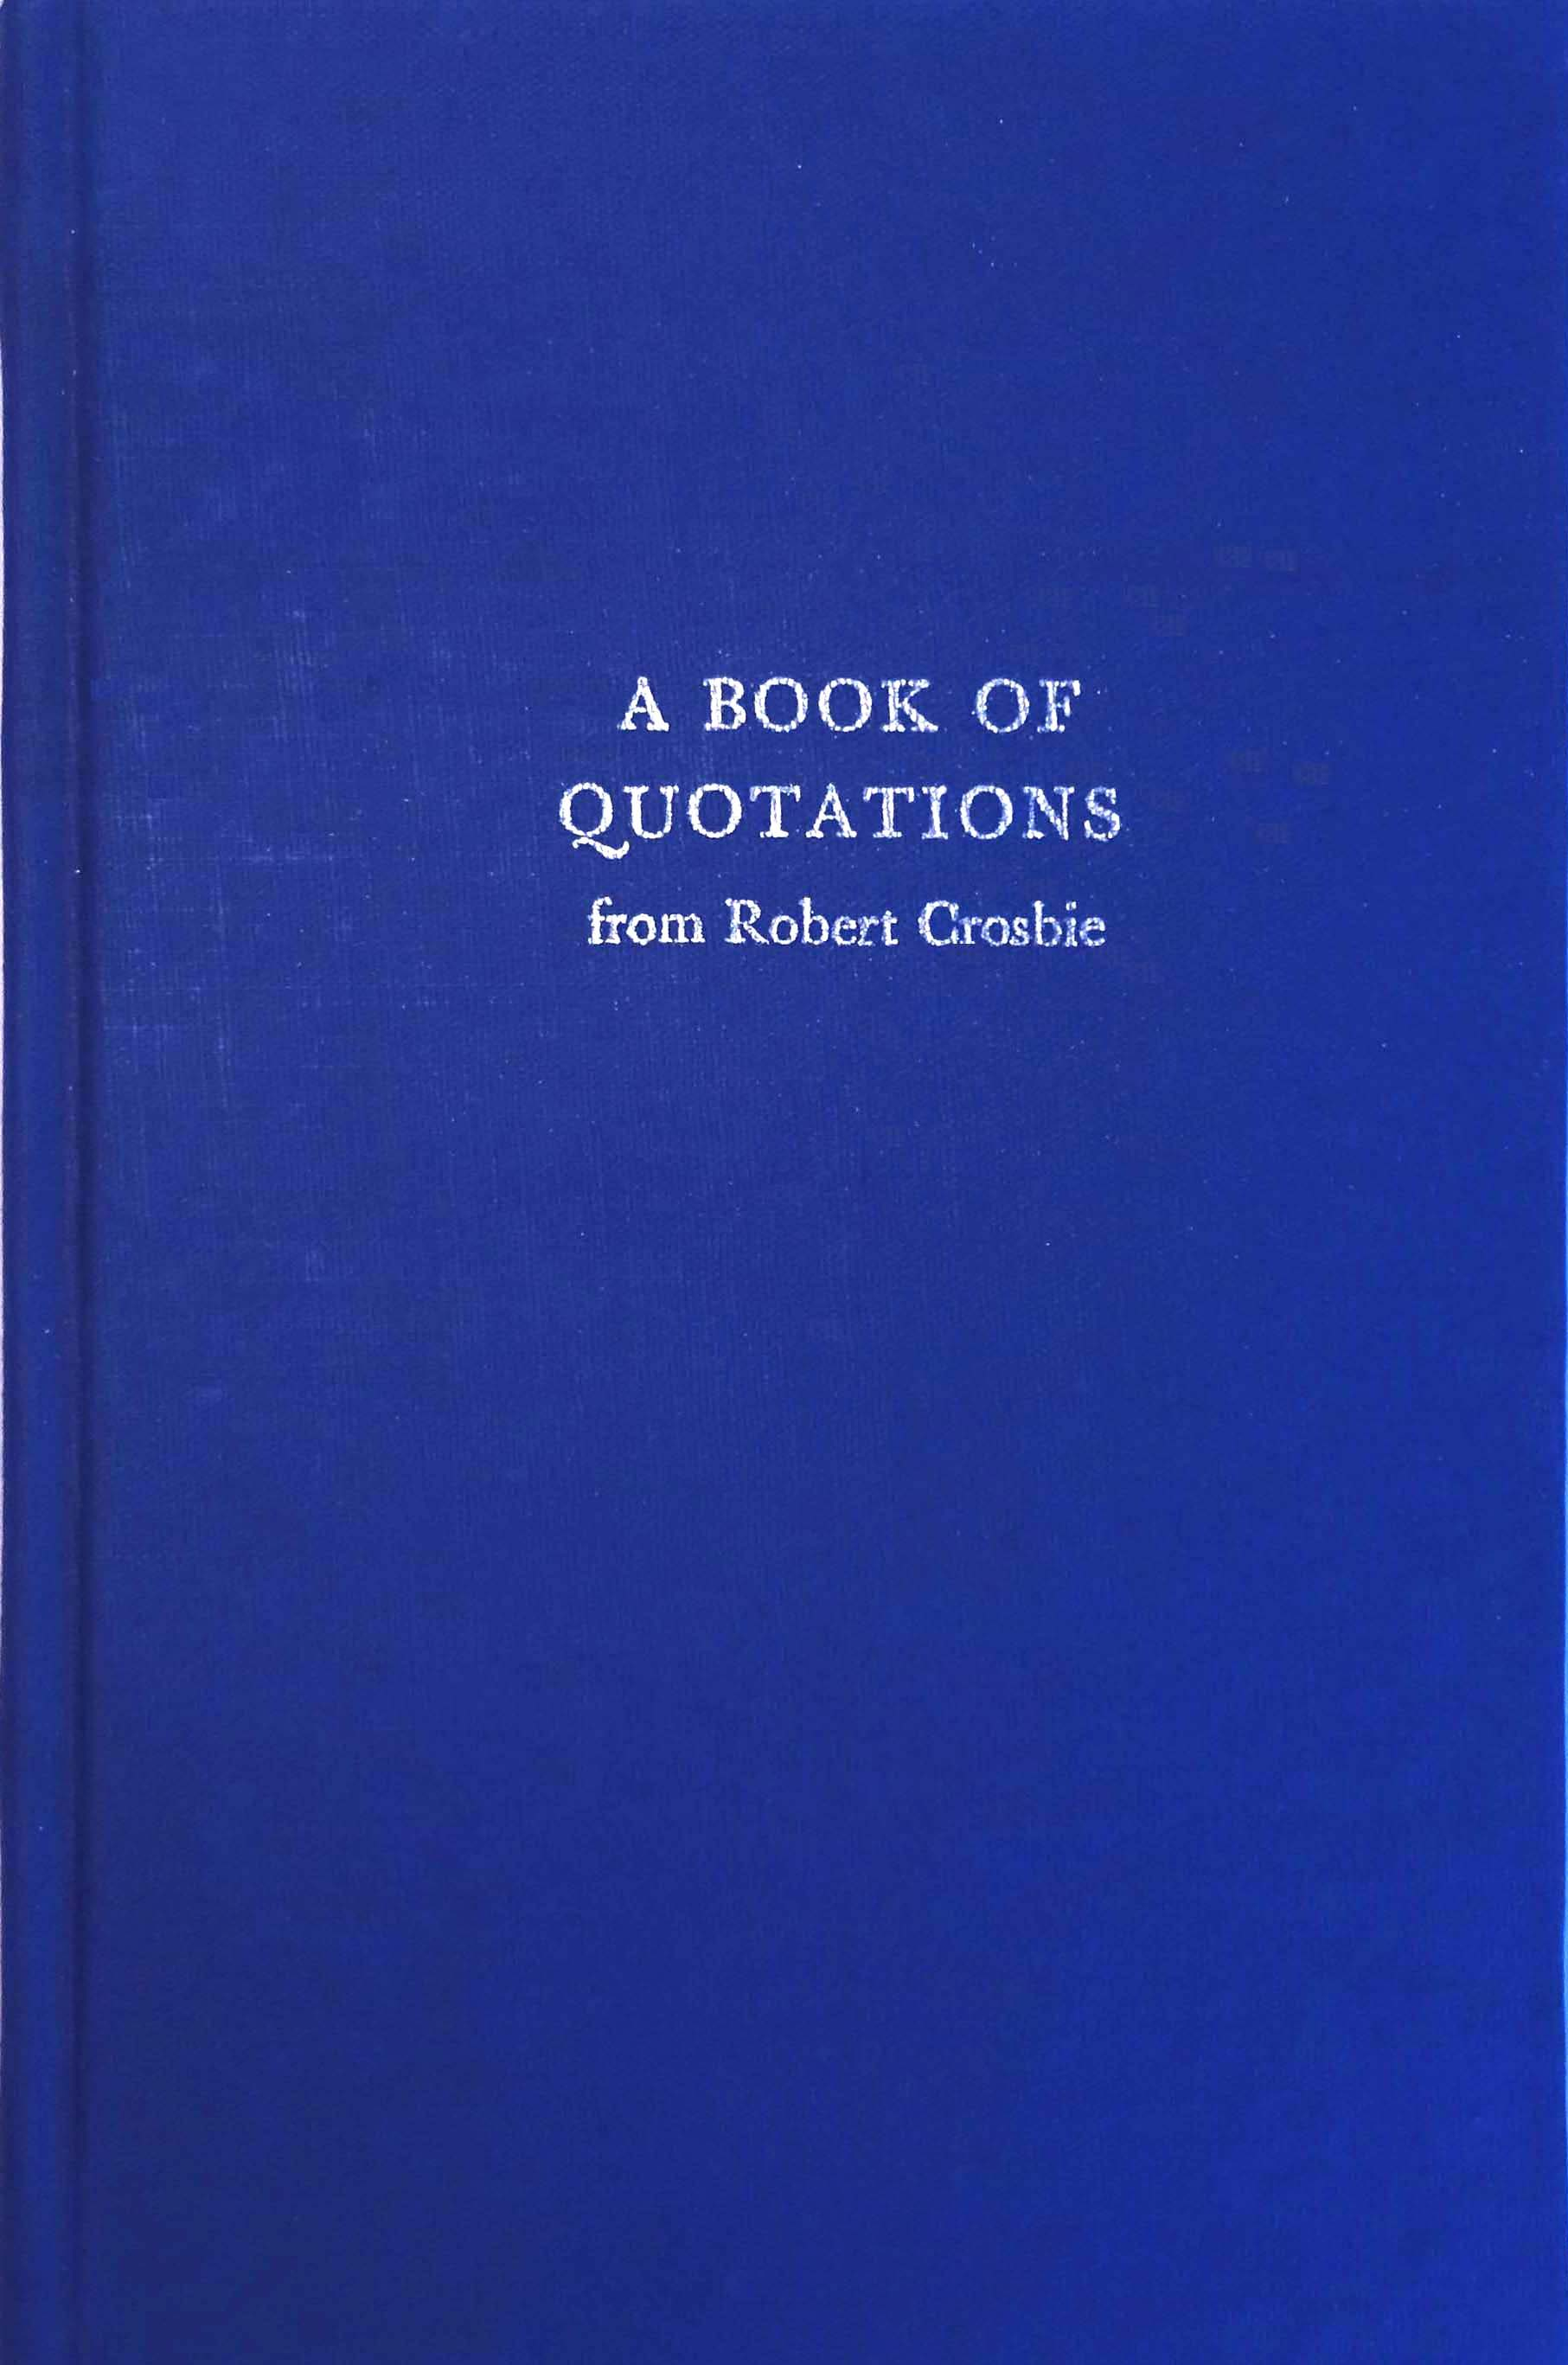 A Book of Quotations from Robert Crosbie by Robert Crosbie